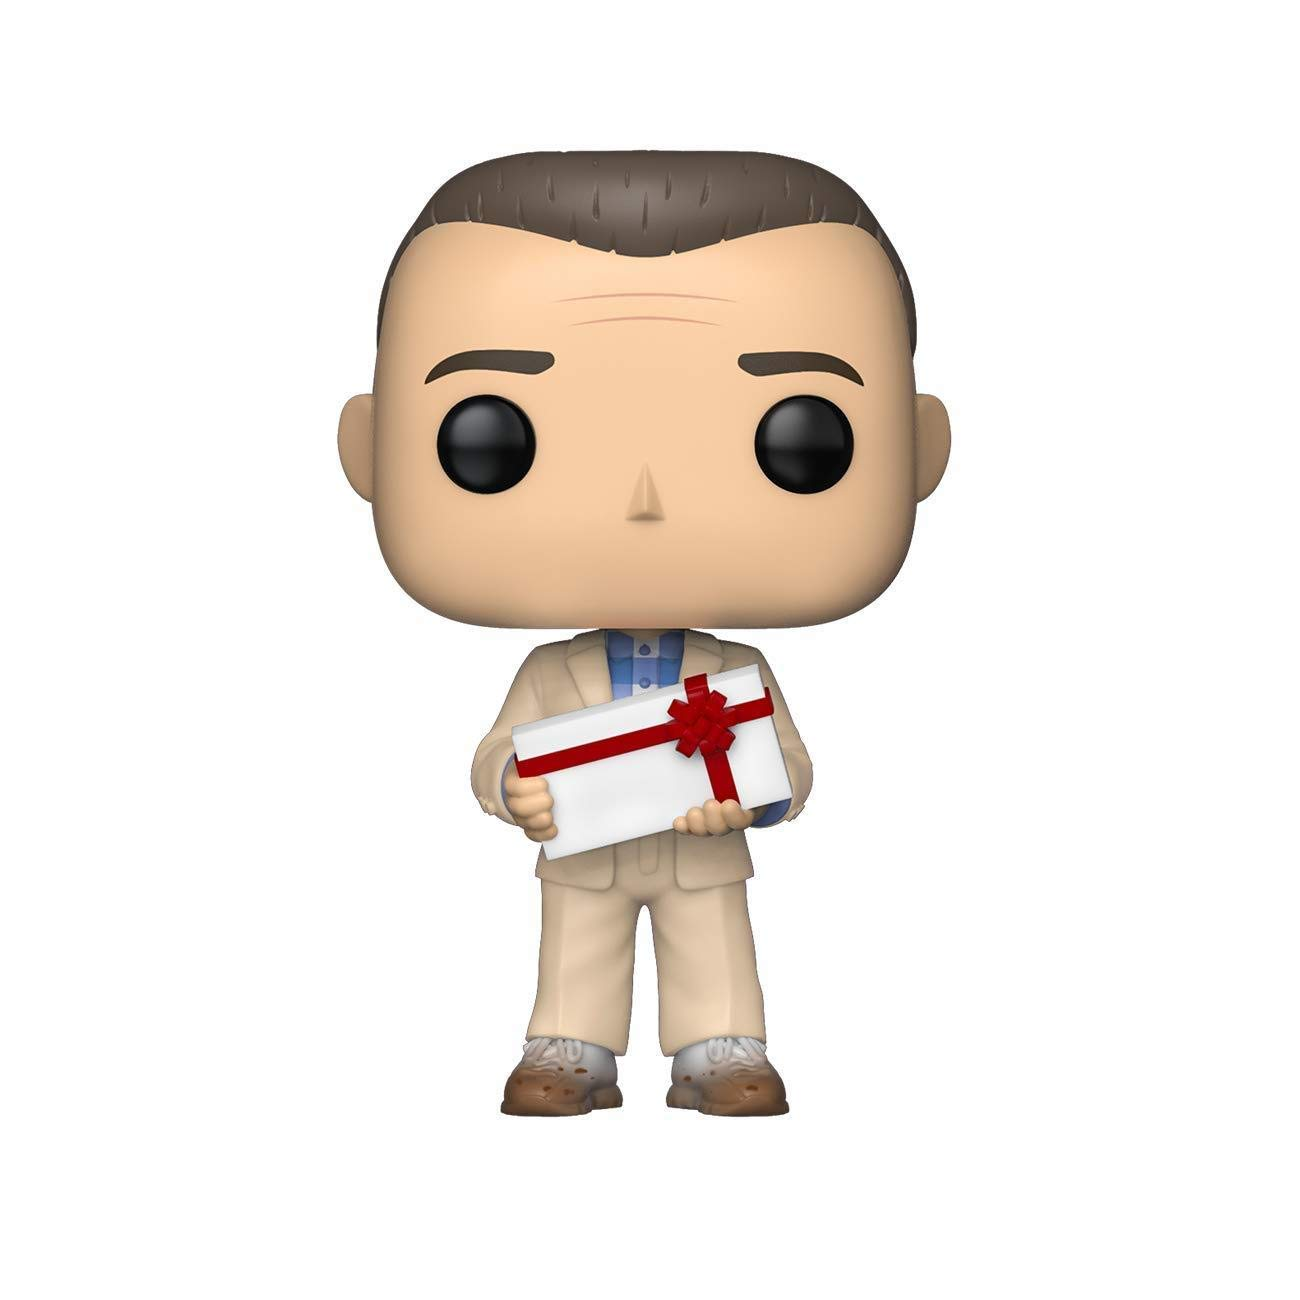 Amazon.com: Funko Pop! Movies: Forrest Gump - Forrest with Chocolates,  Multicolor: Toys & Games